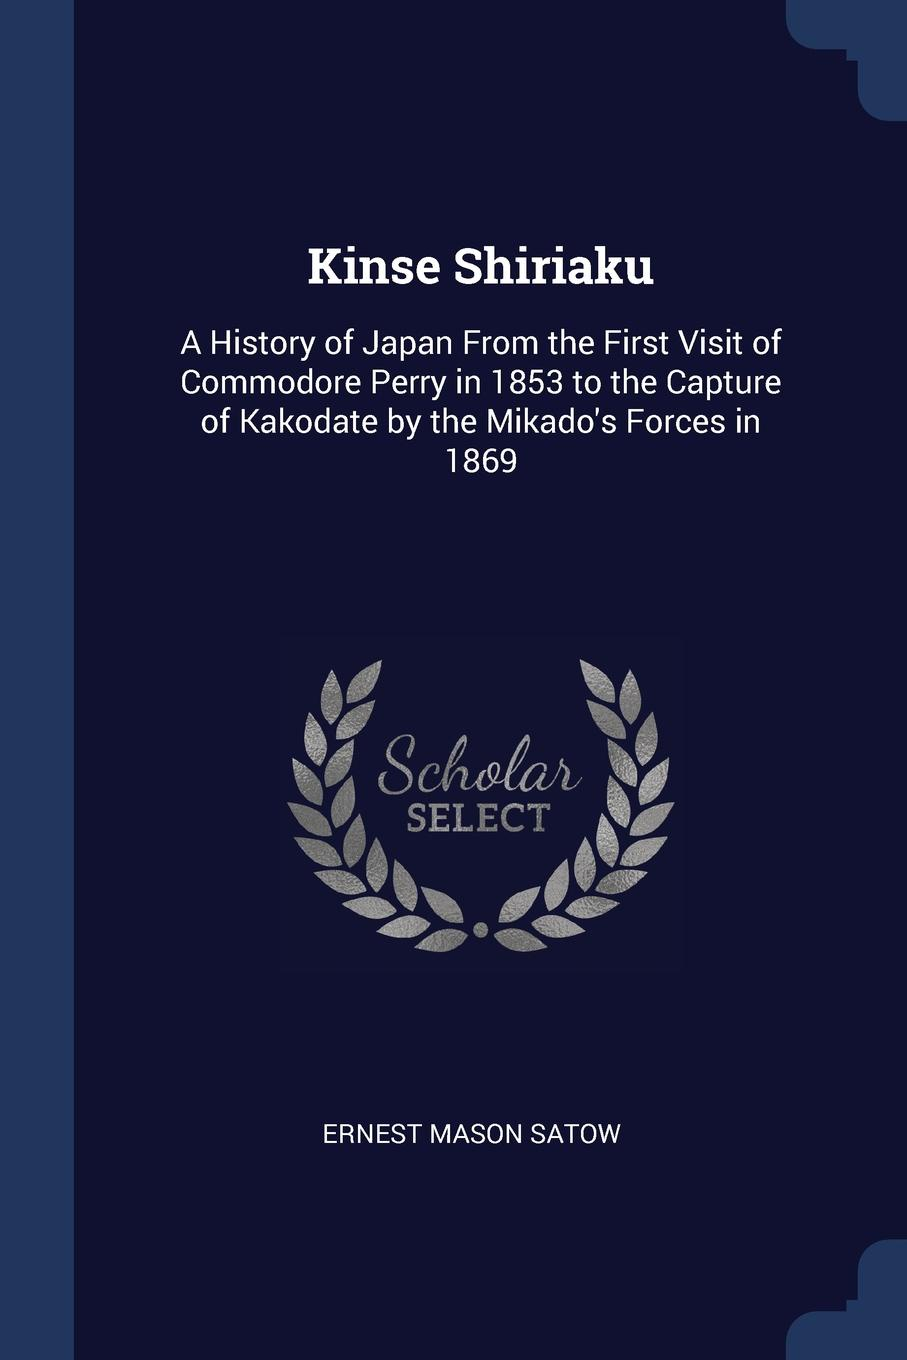 Kinse Shiriaku. A History of Japan From the First Visit of Commodore Perry in 1853 to the Capture of Kakodate by the Mikado.s Forces in 1869. Ernest Mason Satow